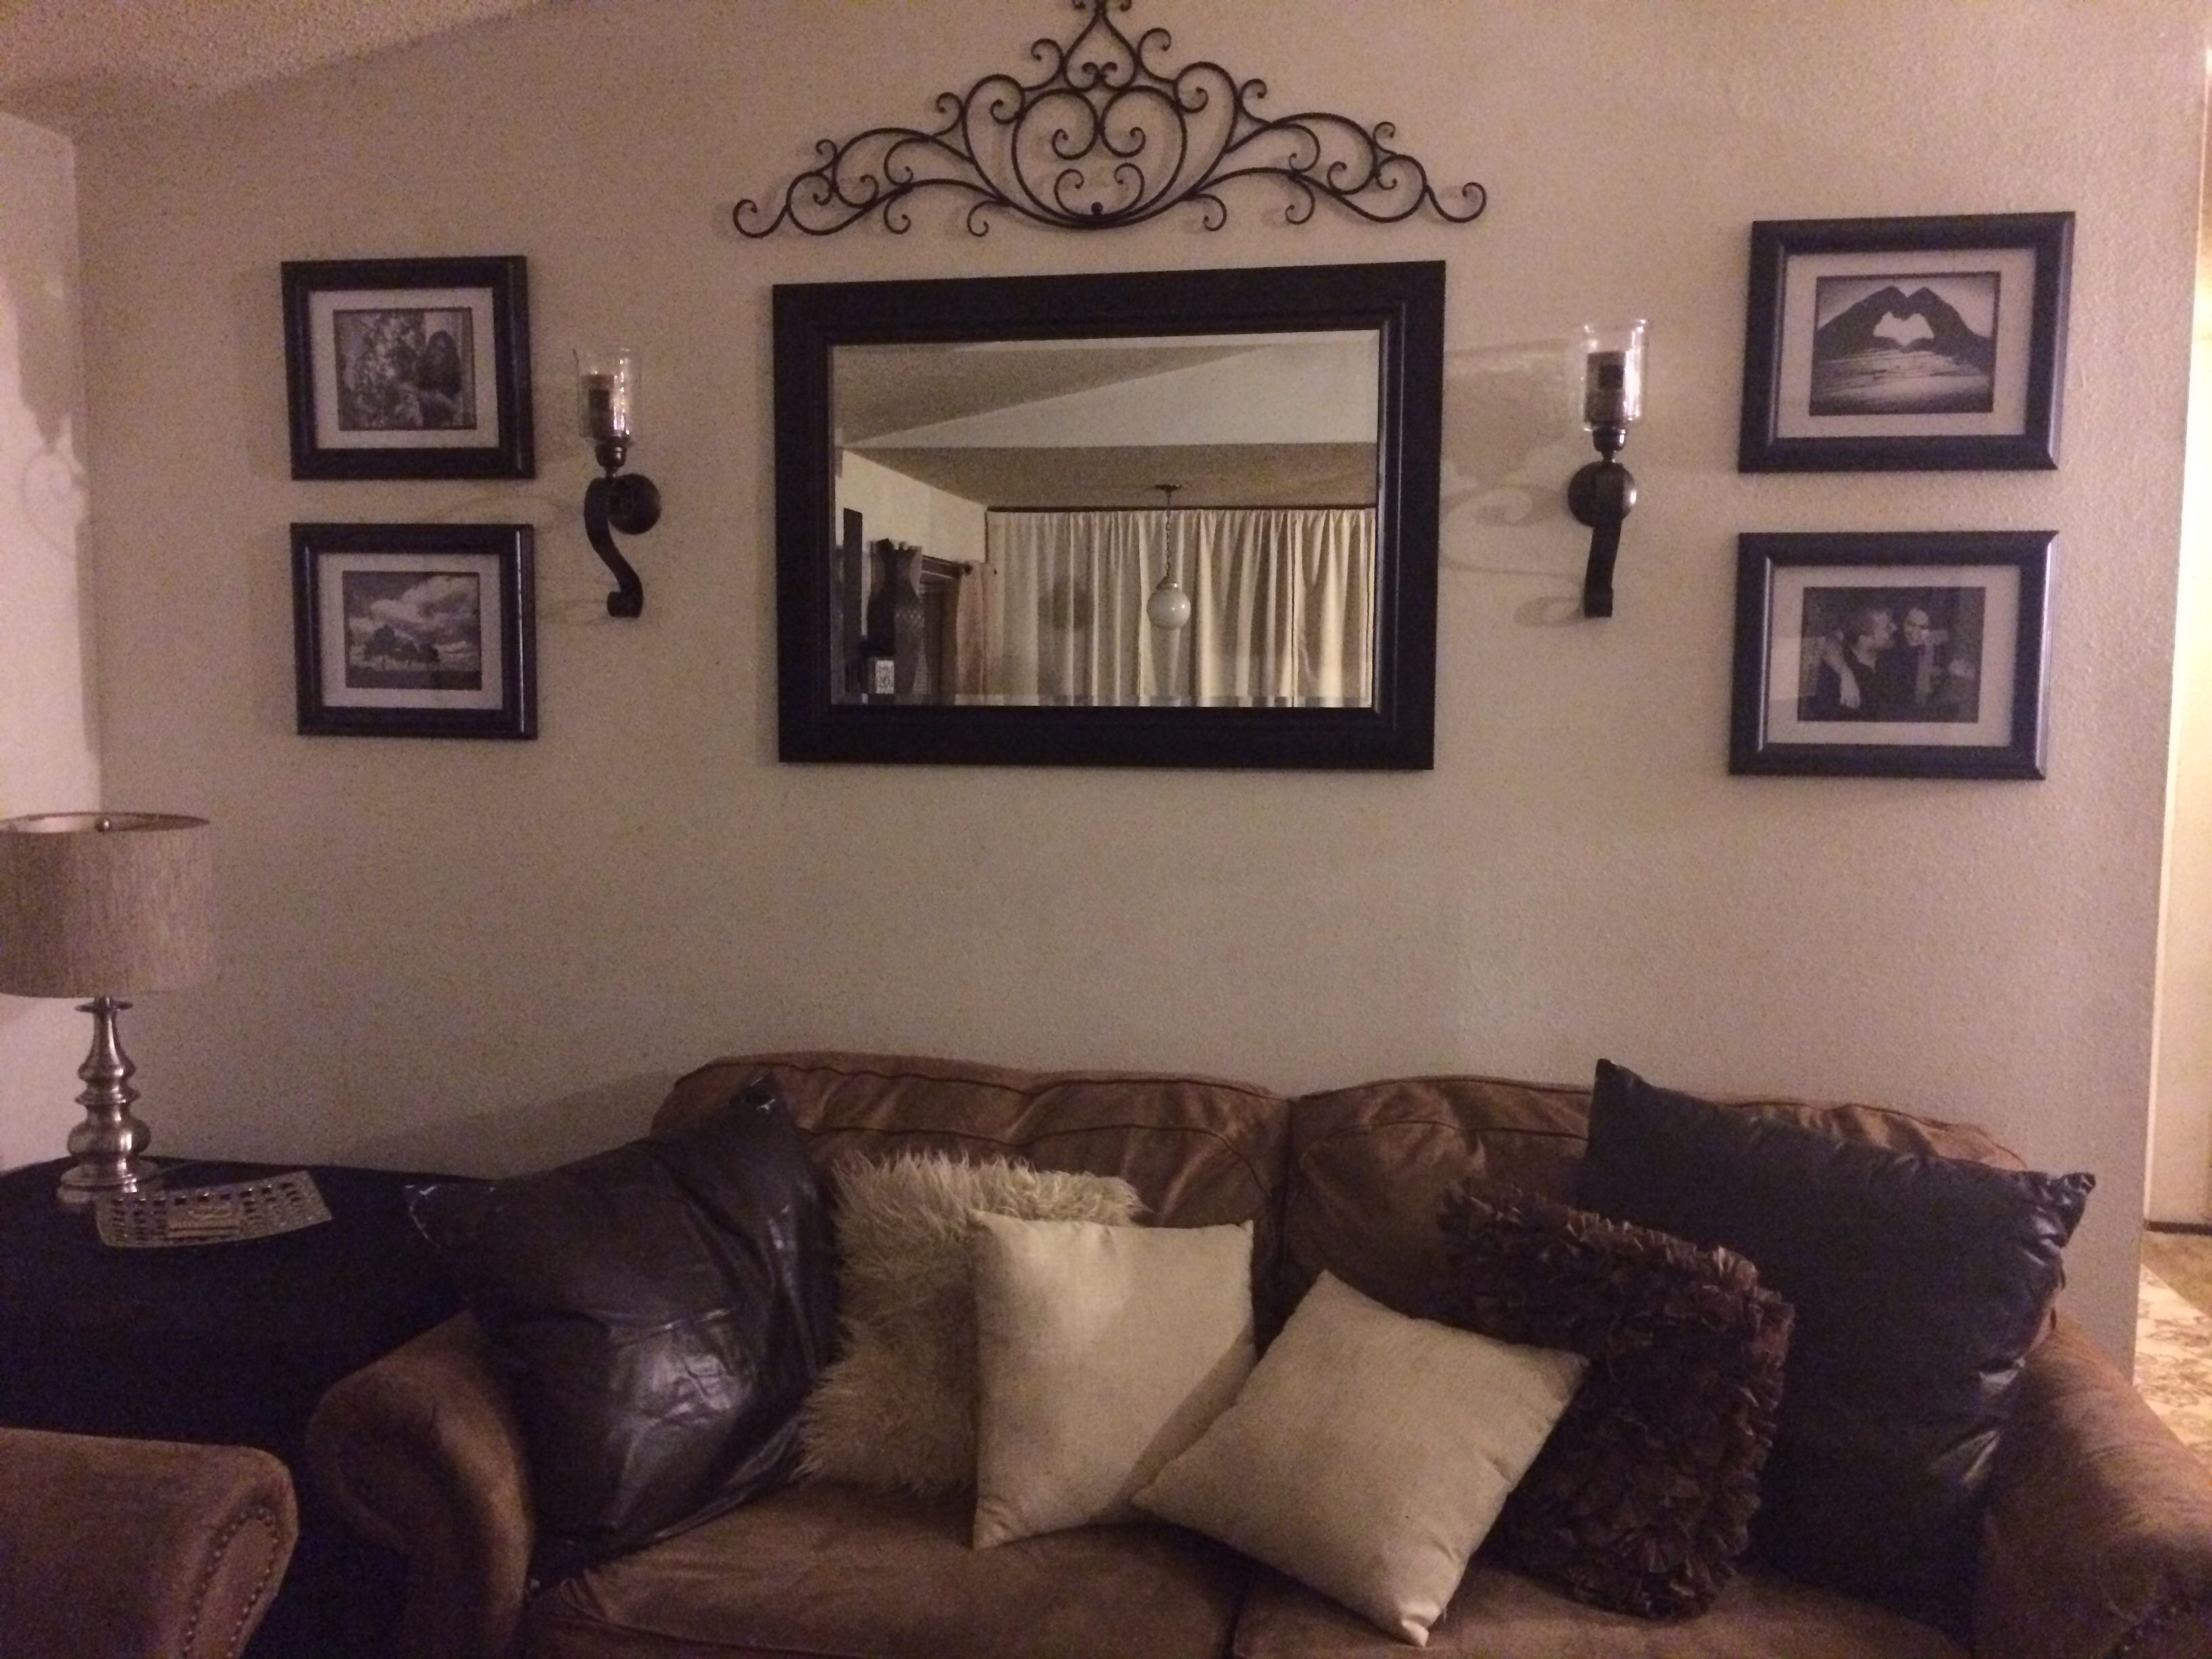 behind couch wall in living room mirror  frame  sconces  and metal     behind couch wall in living room mirror  frame  sconces  and metal decor